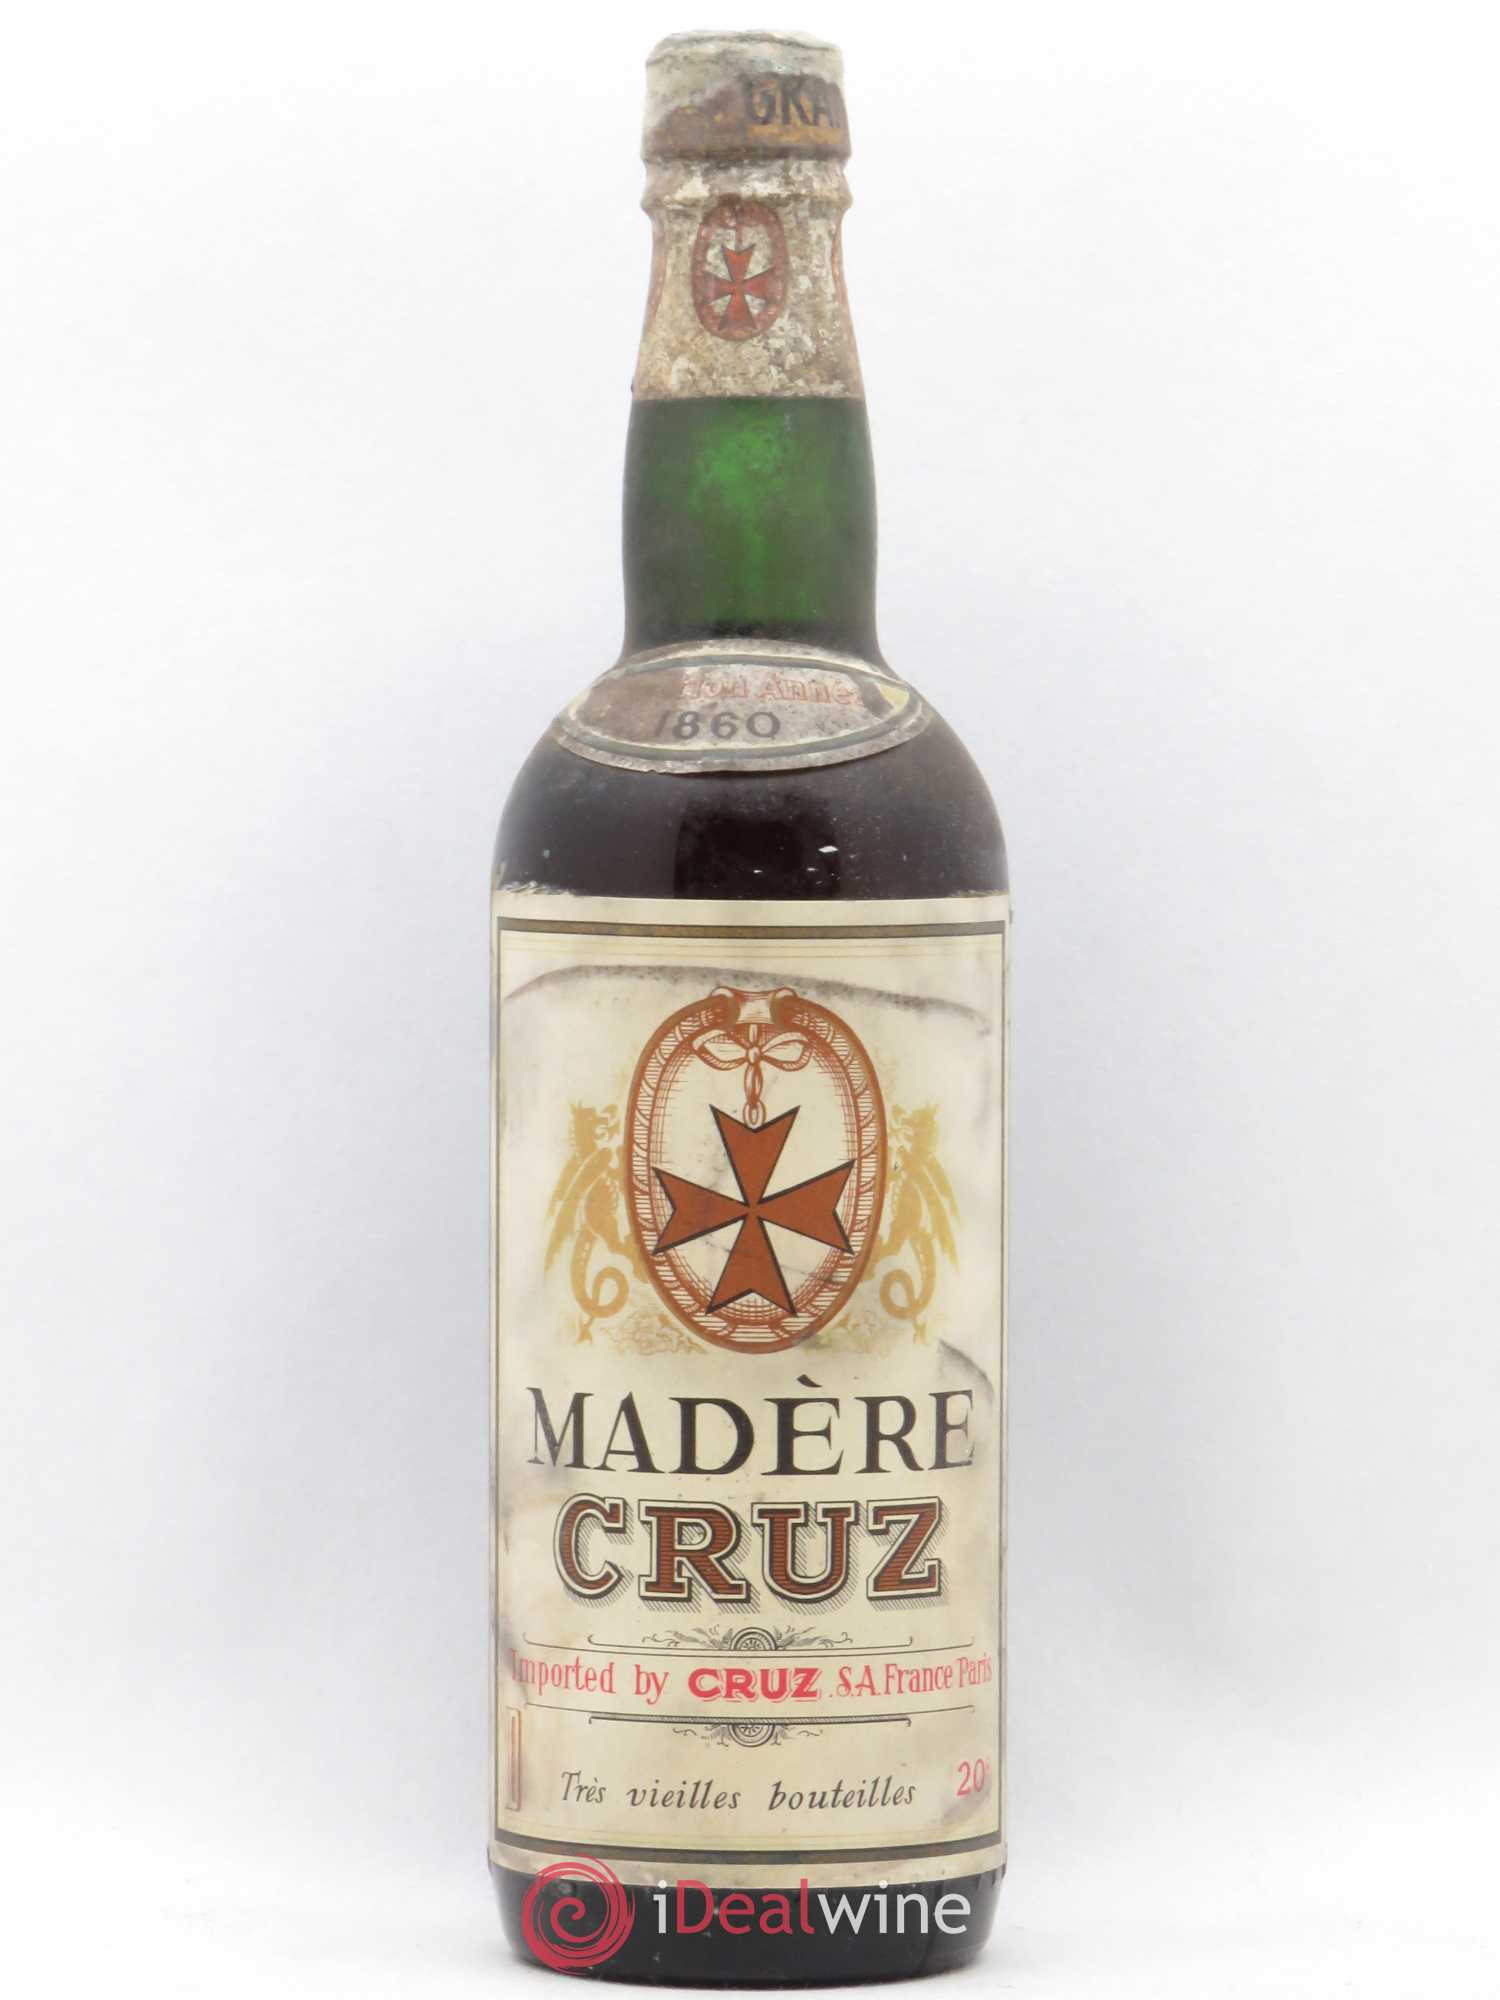 Madère Cruz 1860 - Lot of 1 Bottle